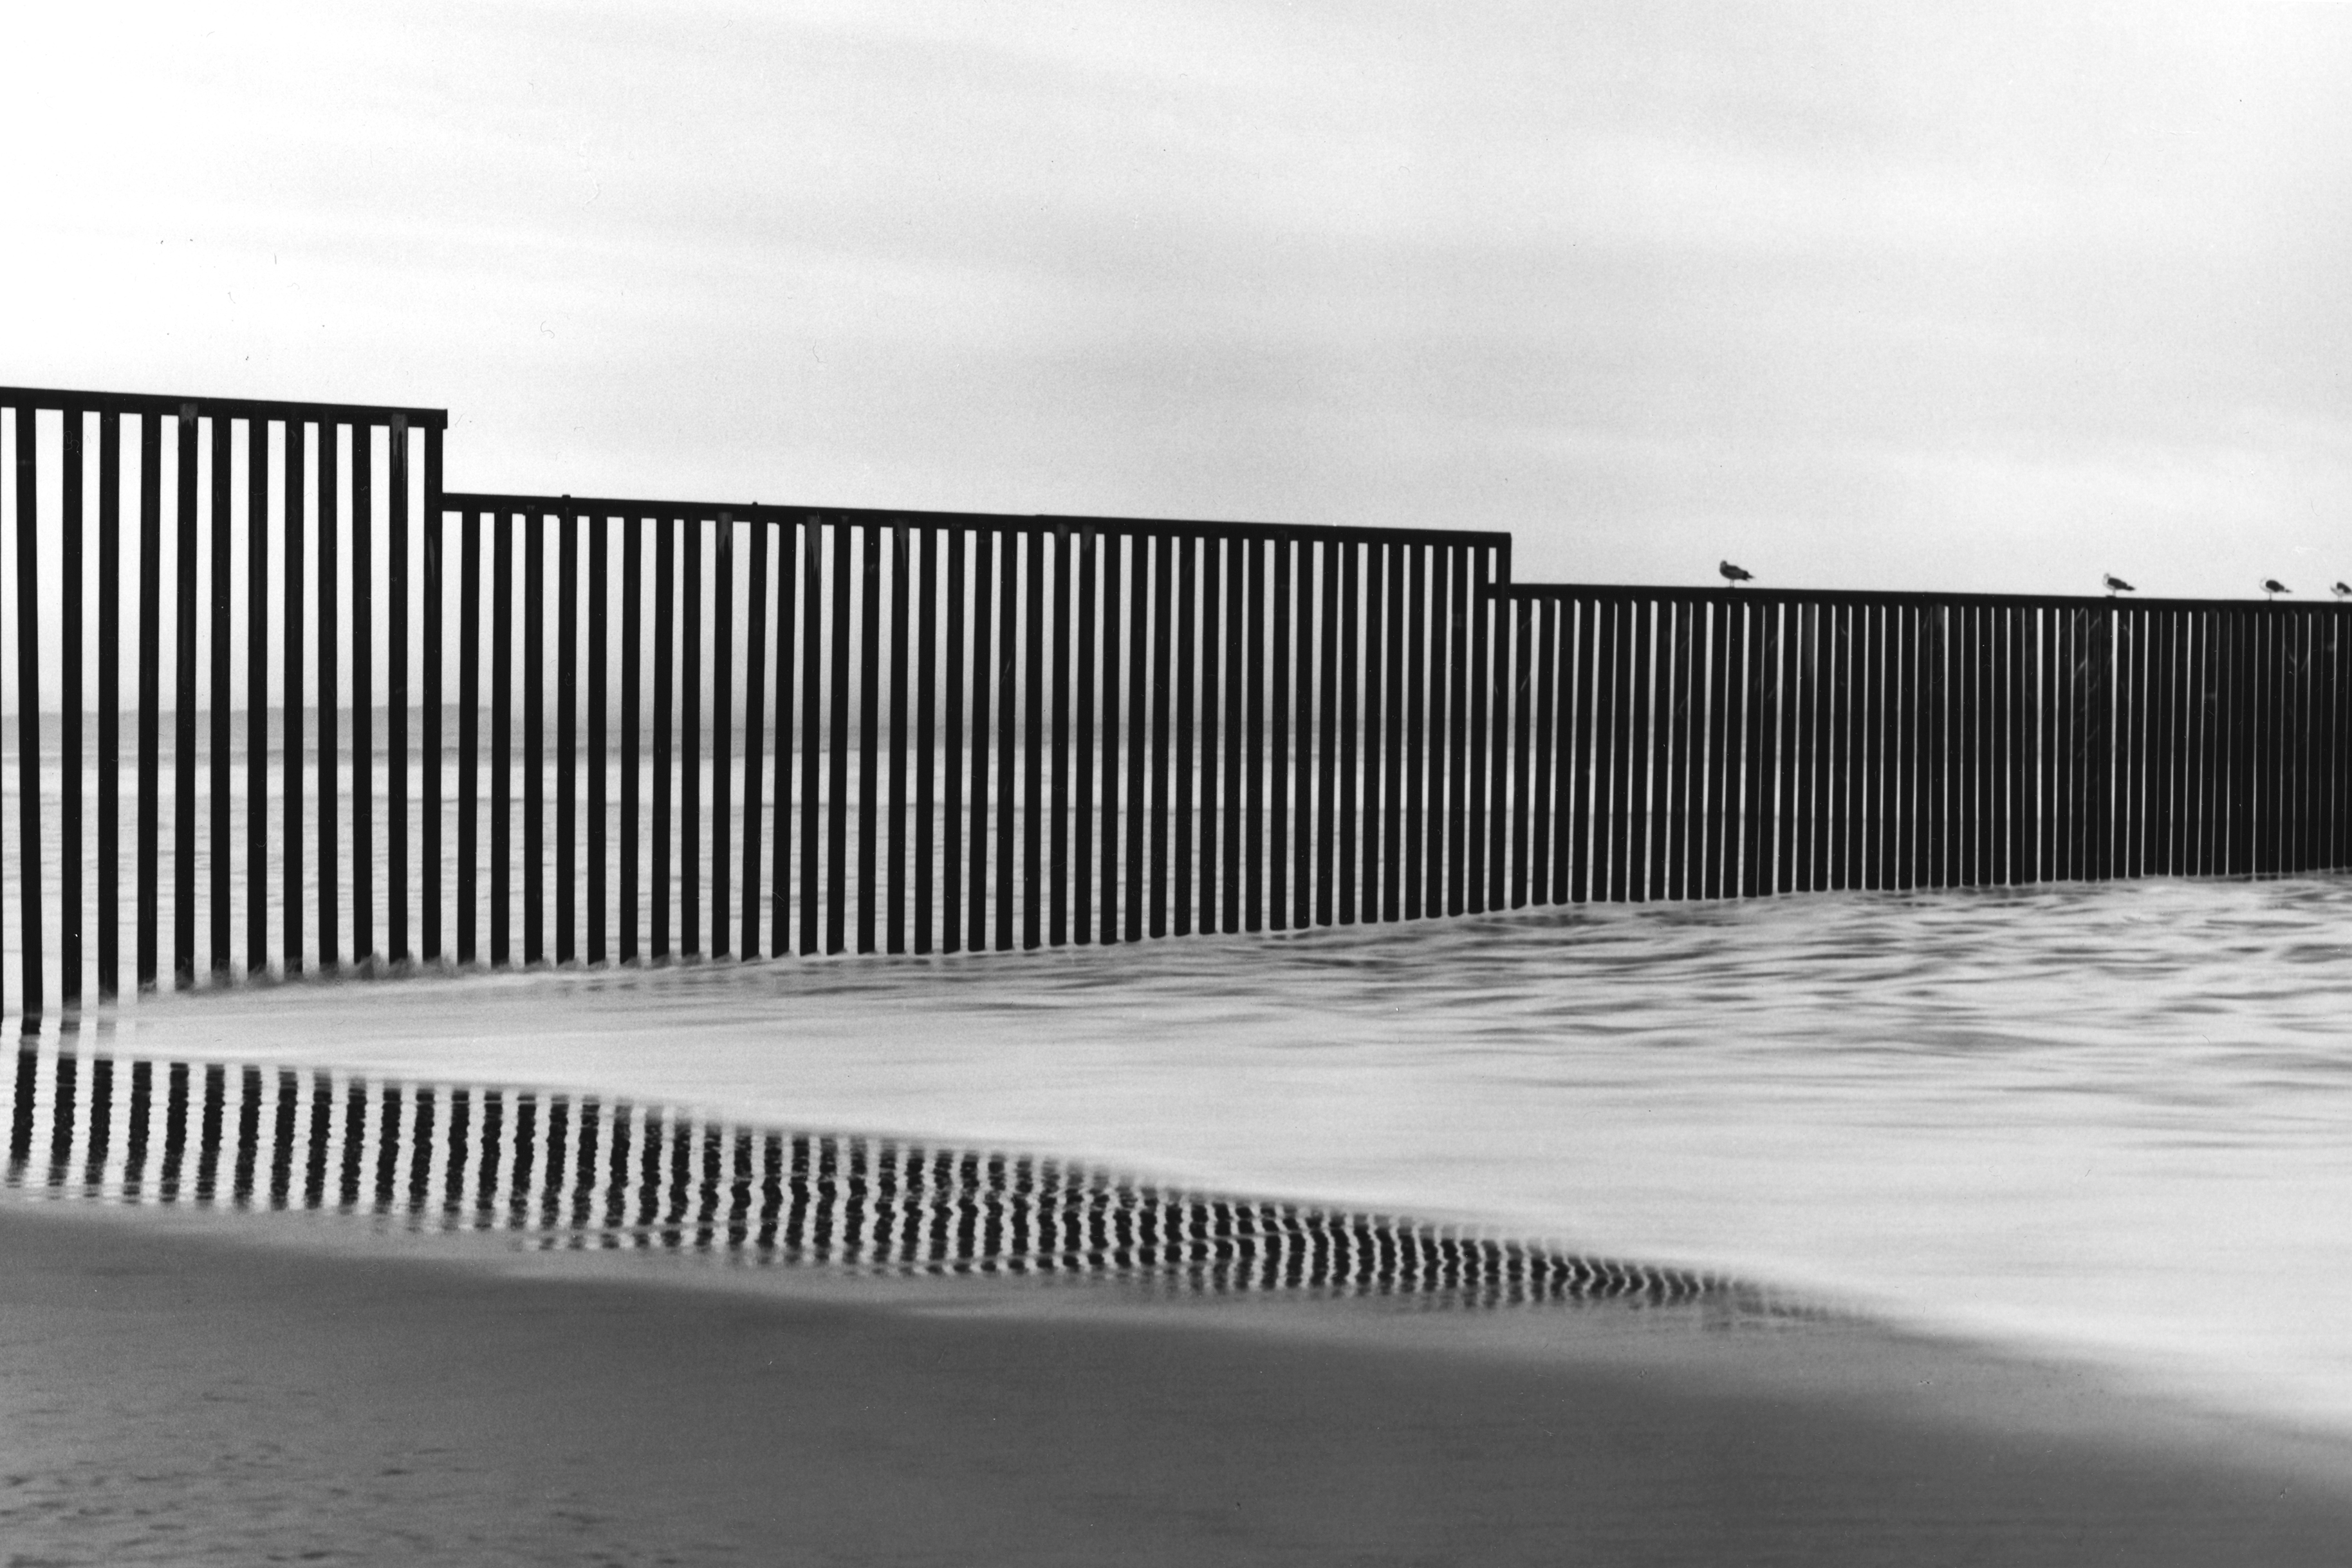 A barred fence stretches across the beach into the water